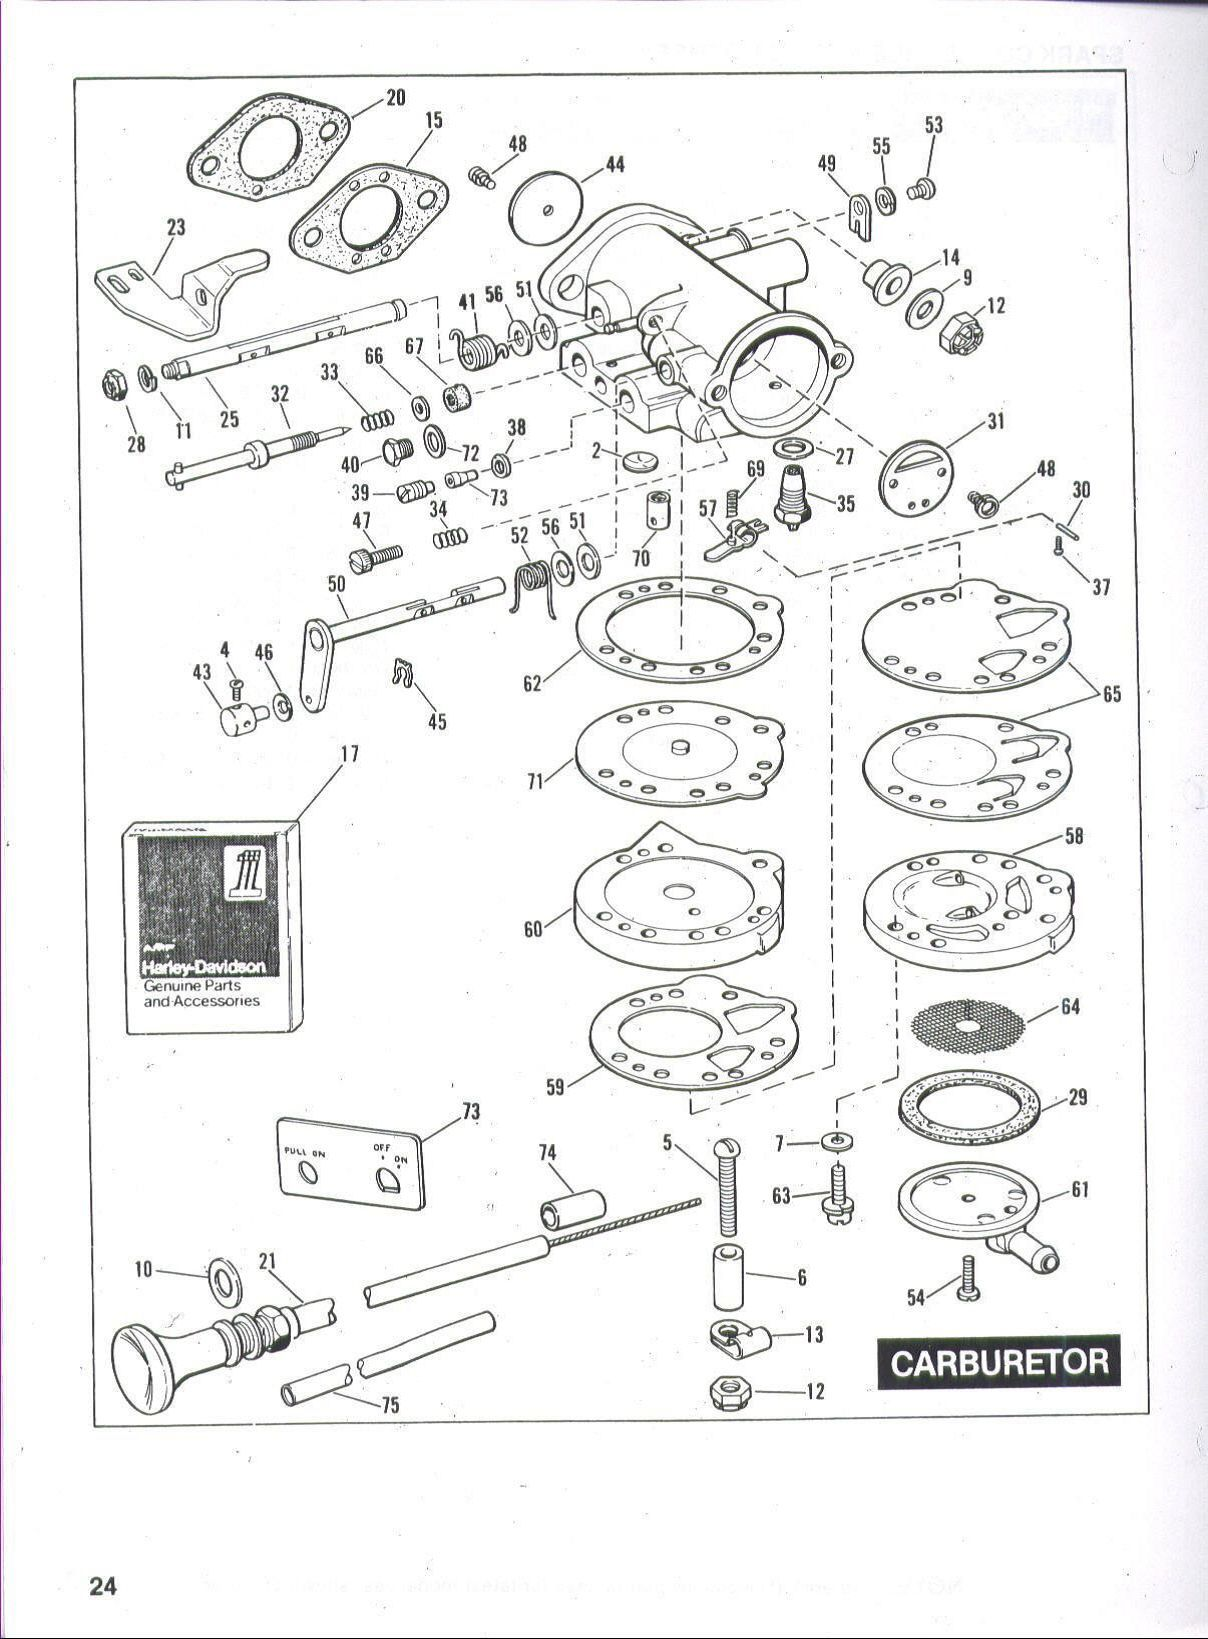 Harley-Davidson Golf Cart Carburetor Diagram Off Road Golf Cart, Golf Carts,  Diagram